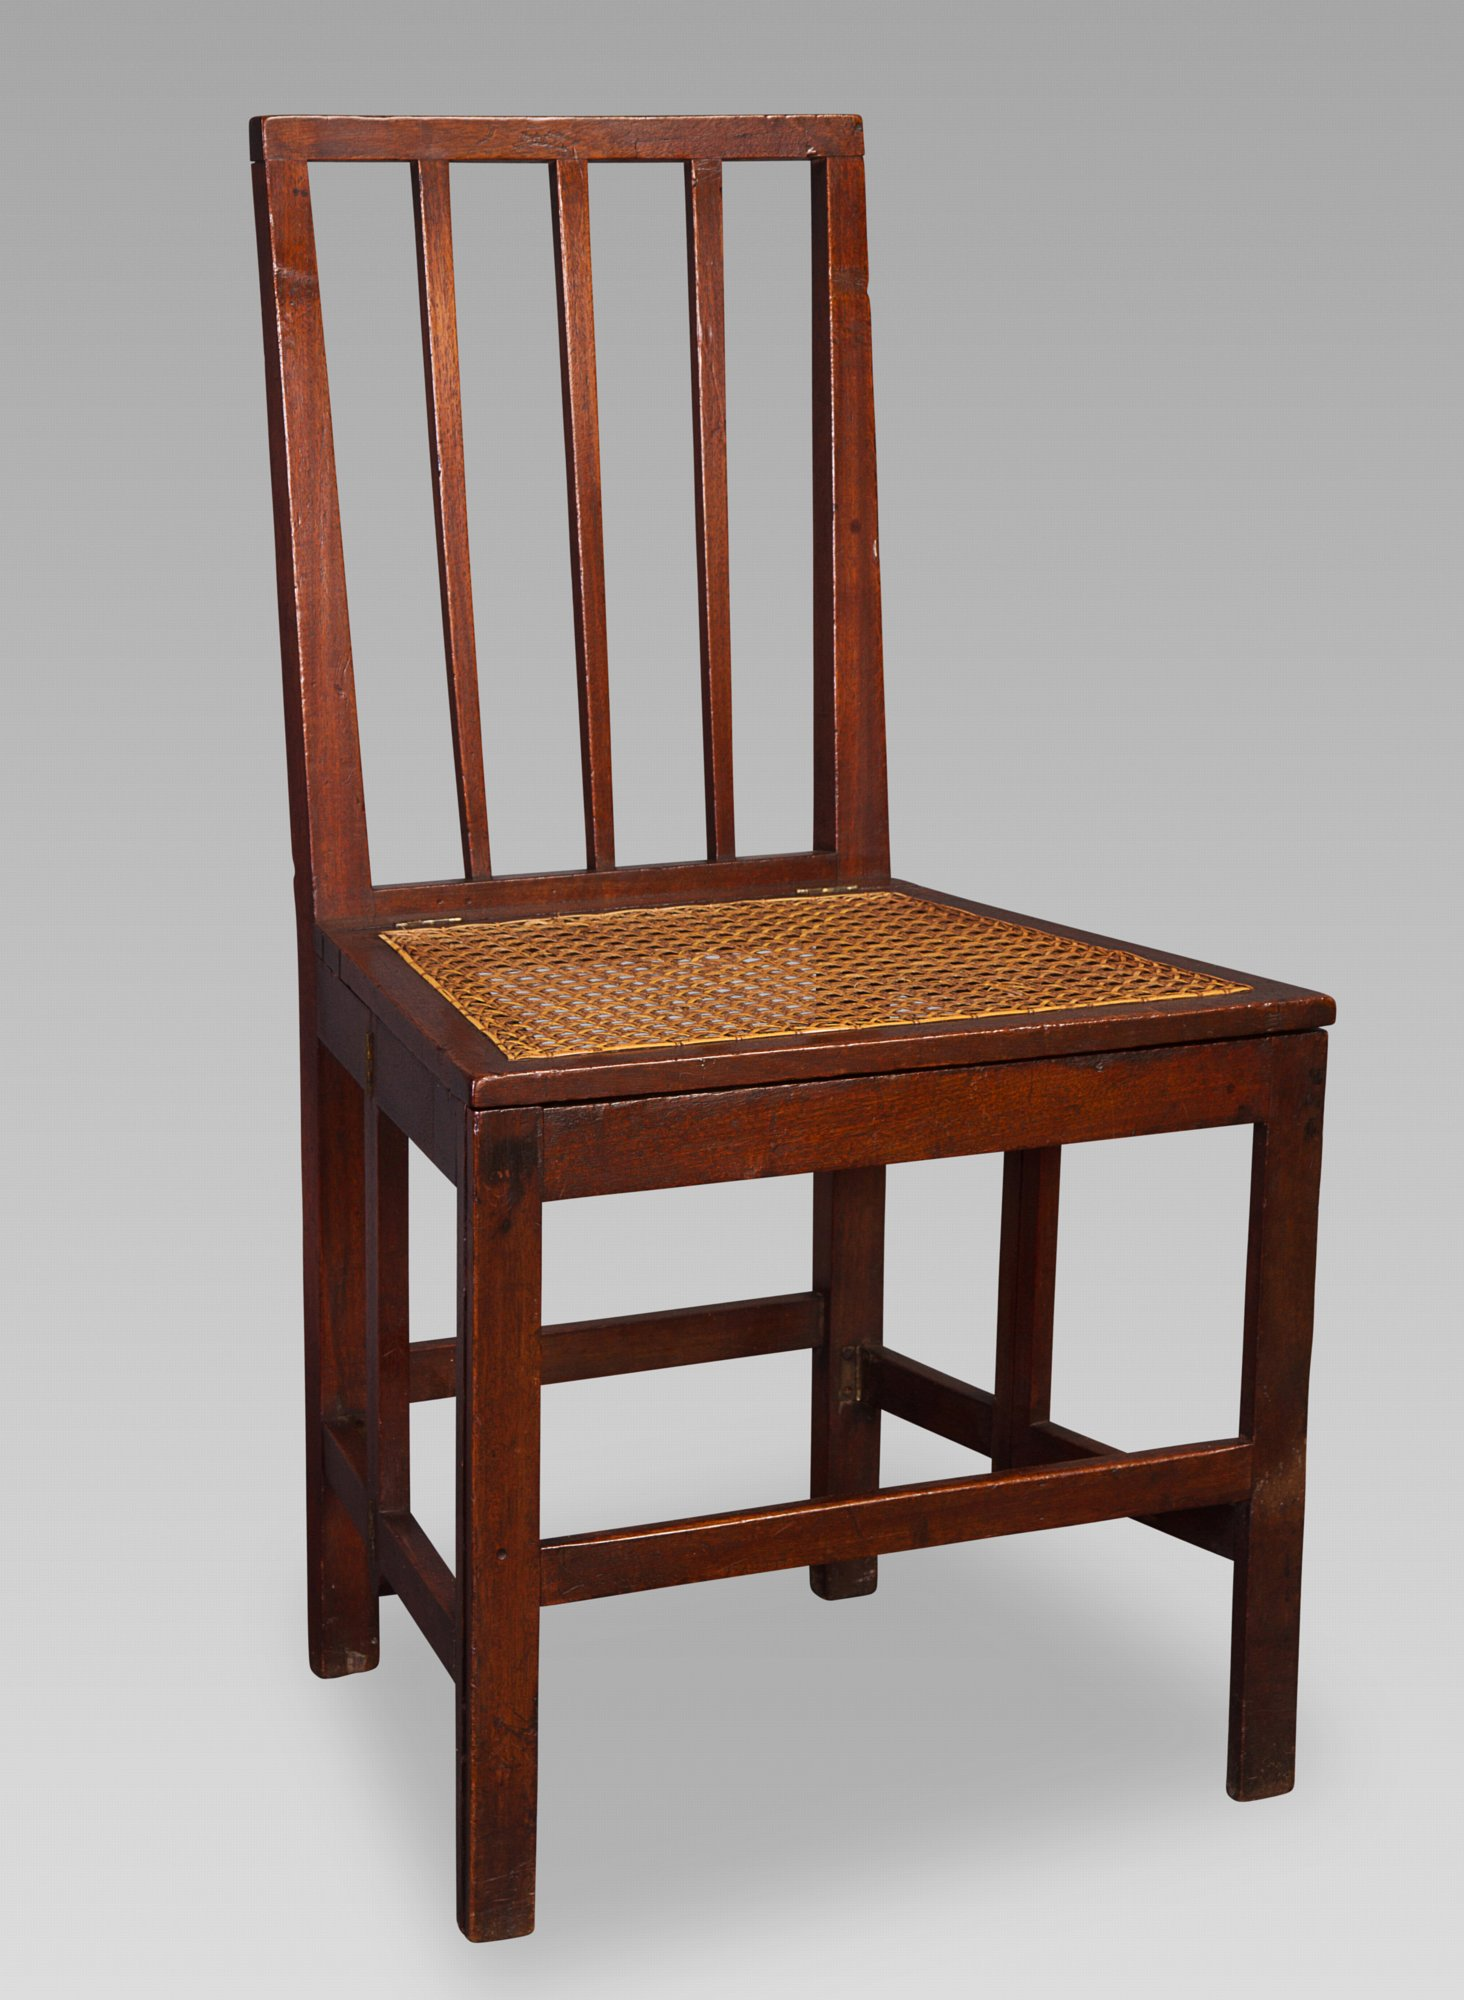 18th Century Mahogany Naval Campaign Chair 327_3 327_2